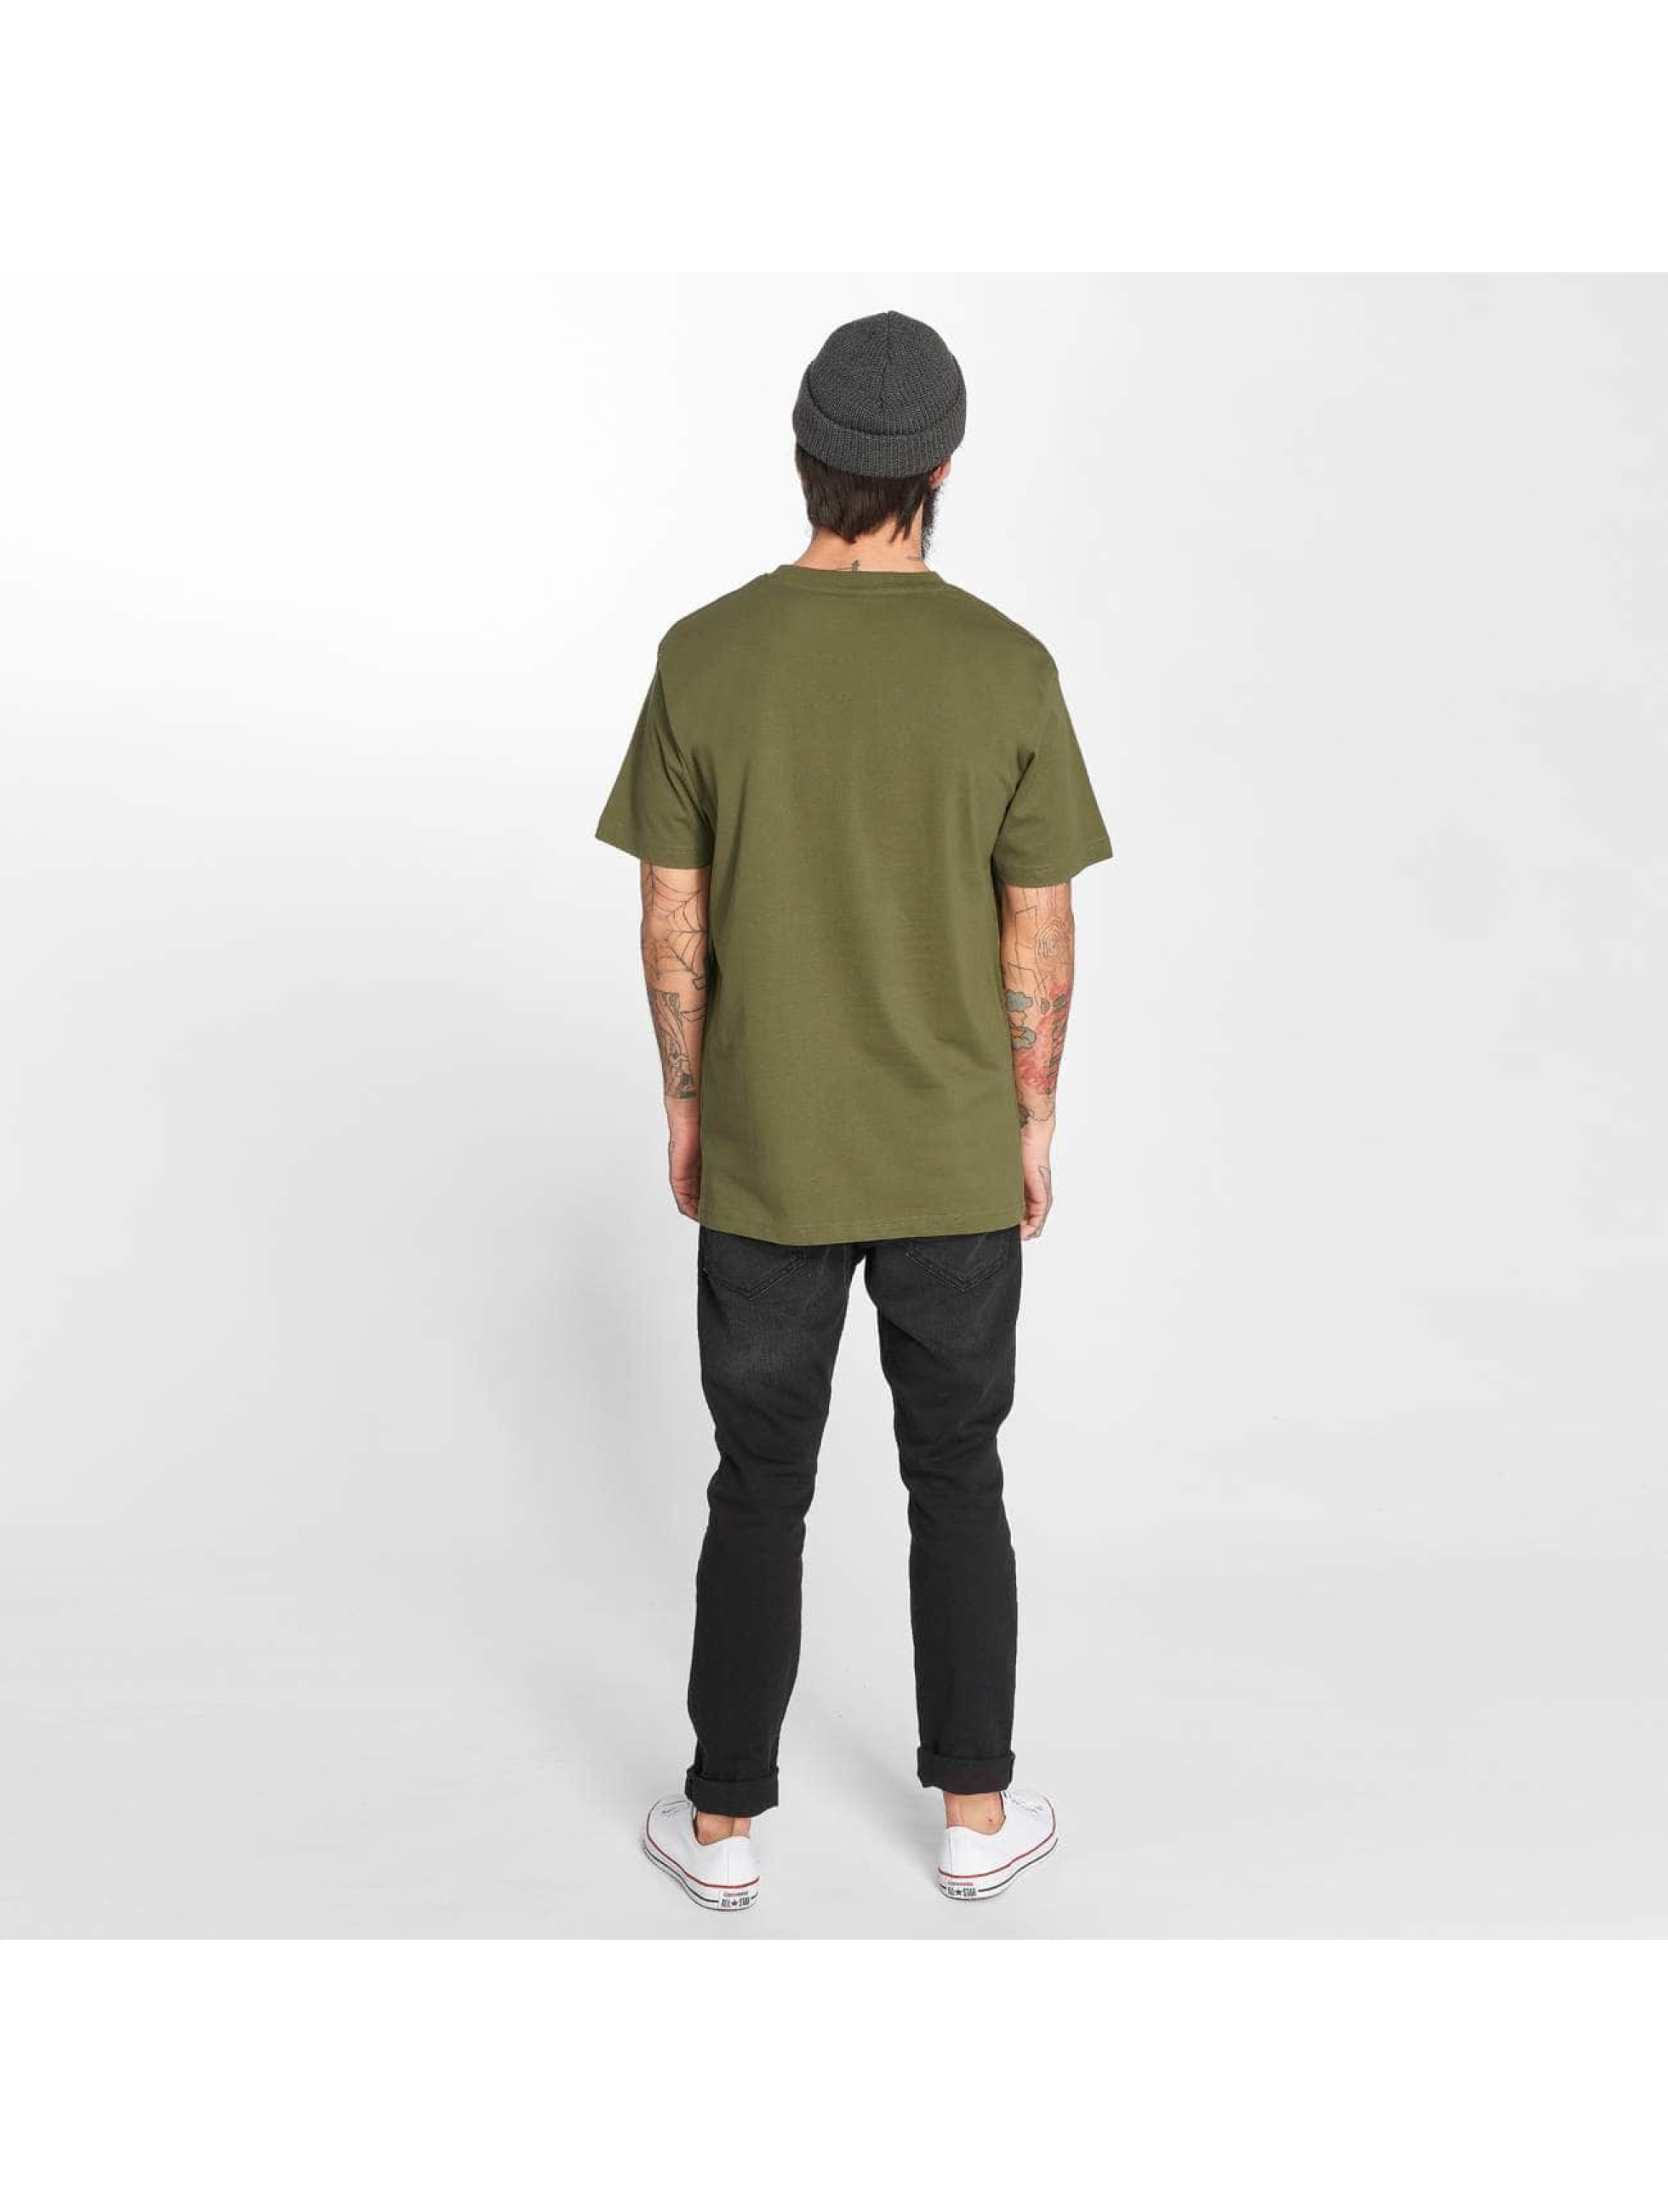 Mister Tee T-Shirt Pray olive